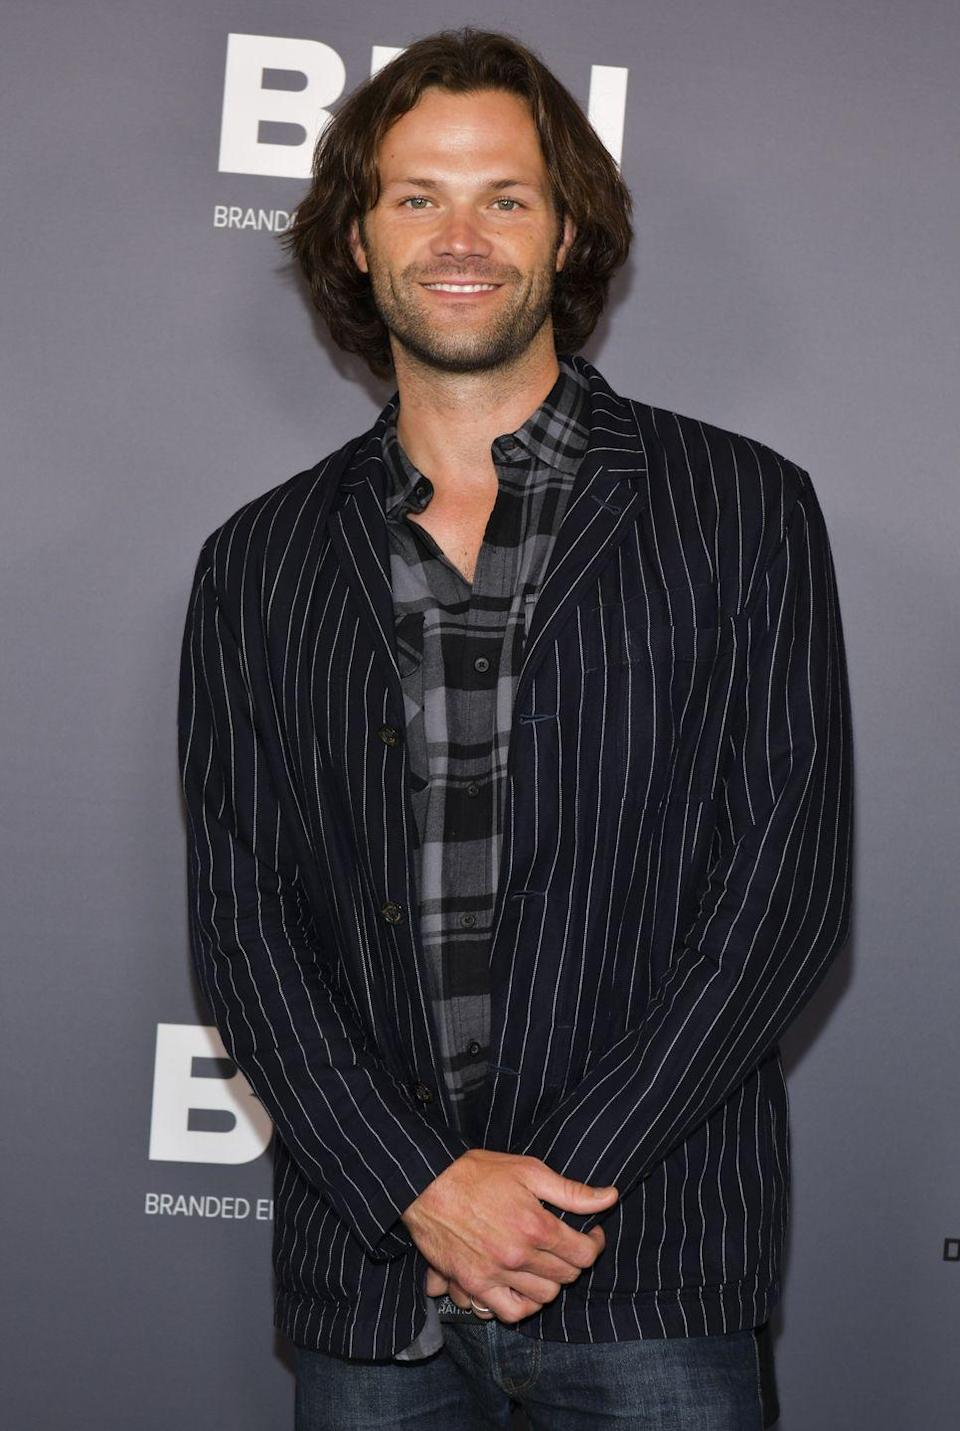 <p>After Jared left the show in 2005, he appeared in multiple horror films (<em>House of Wax </em>and <em>Friday the 13th</em>) and landed a leading role on the hit tv show <em>Supernatural</em>, which is set to end after its current 15th season.</p>